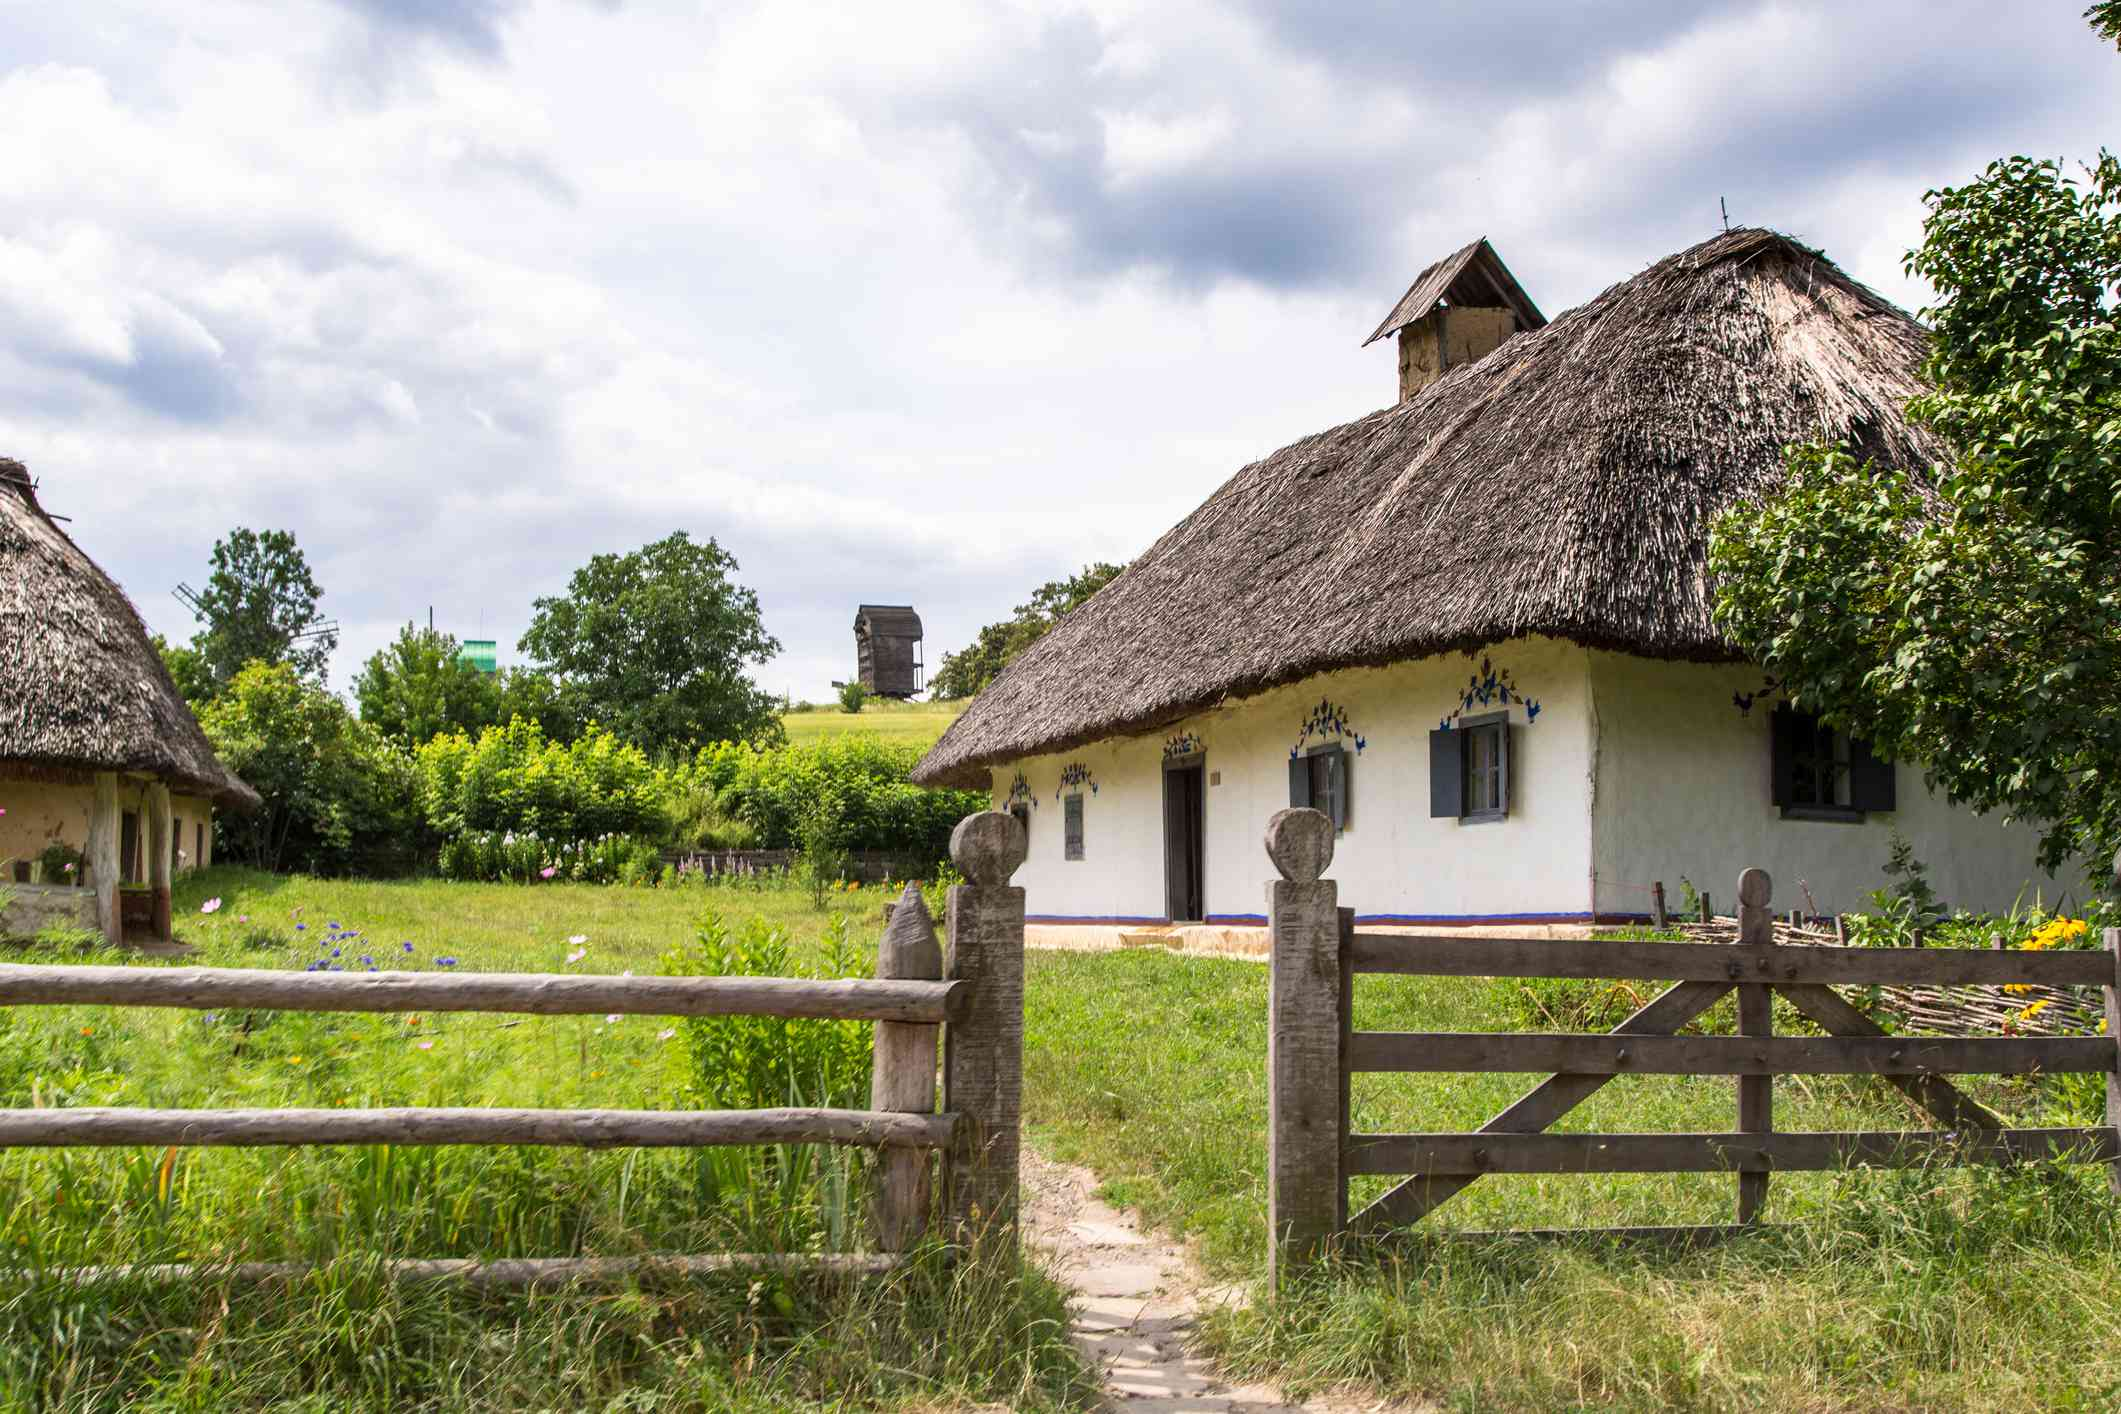 An english cottage.